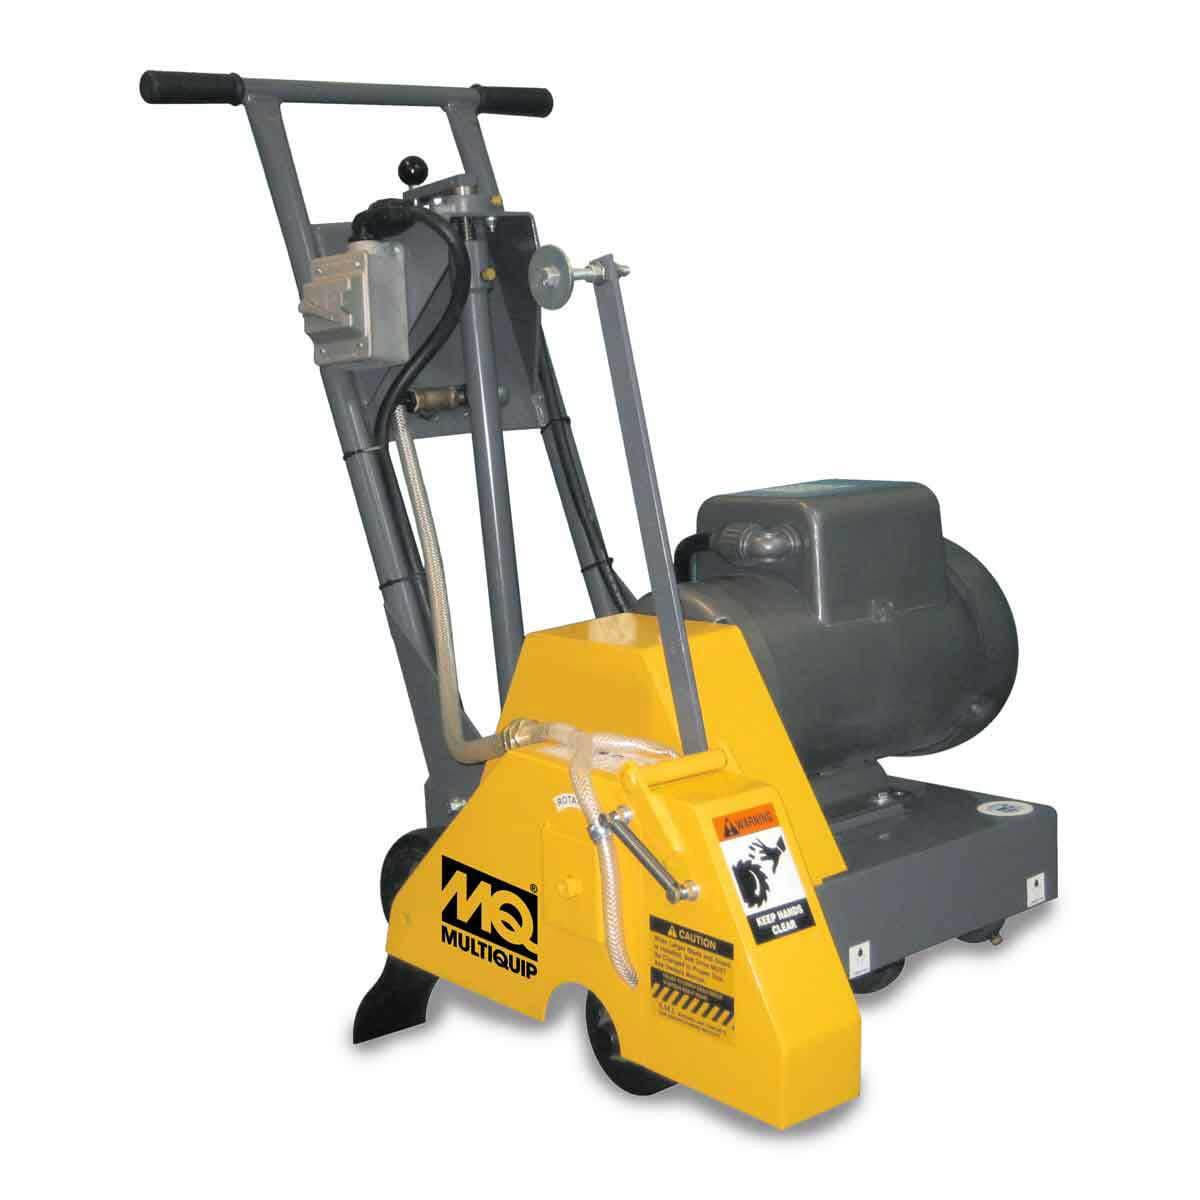 Multiquip electric Push Floor saw